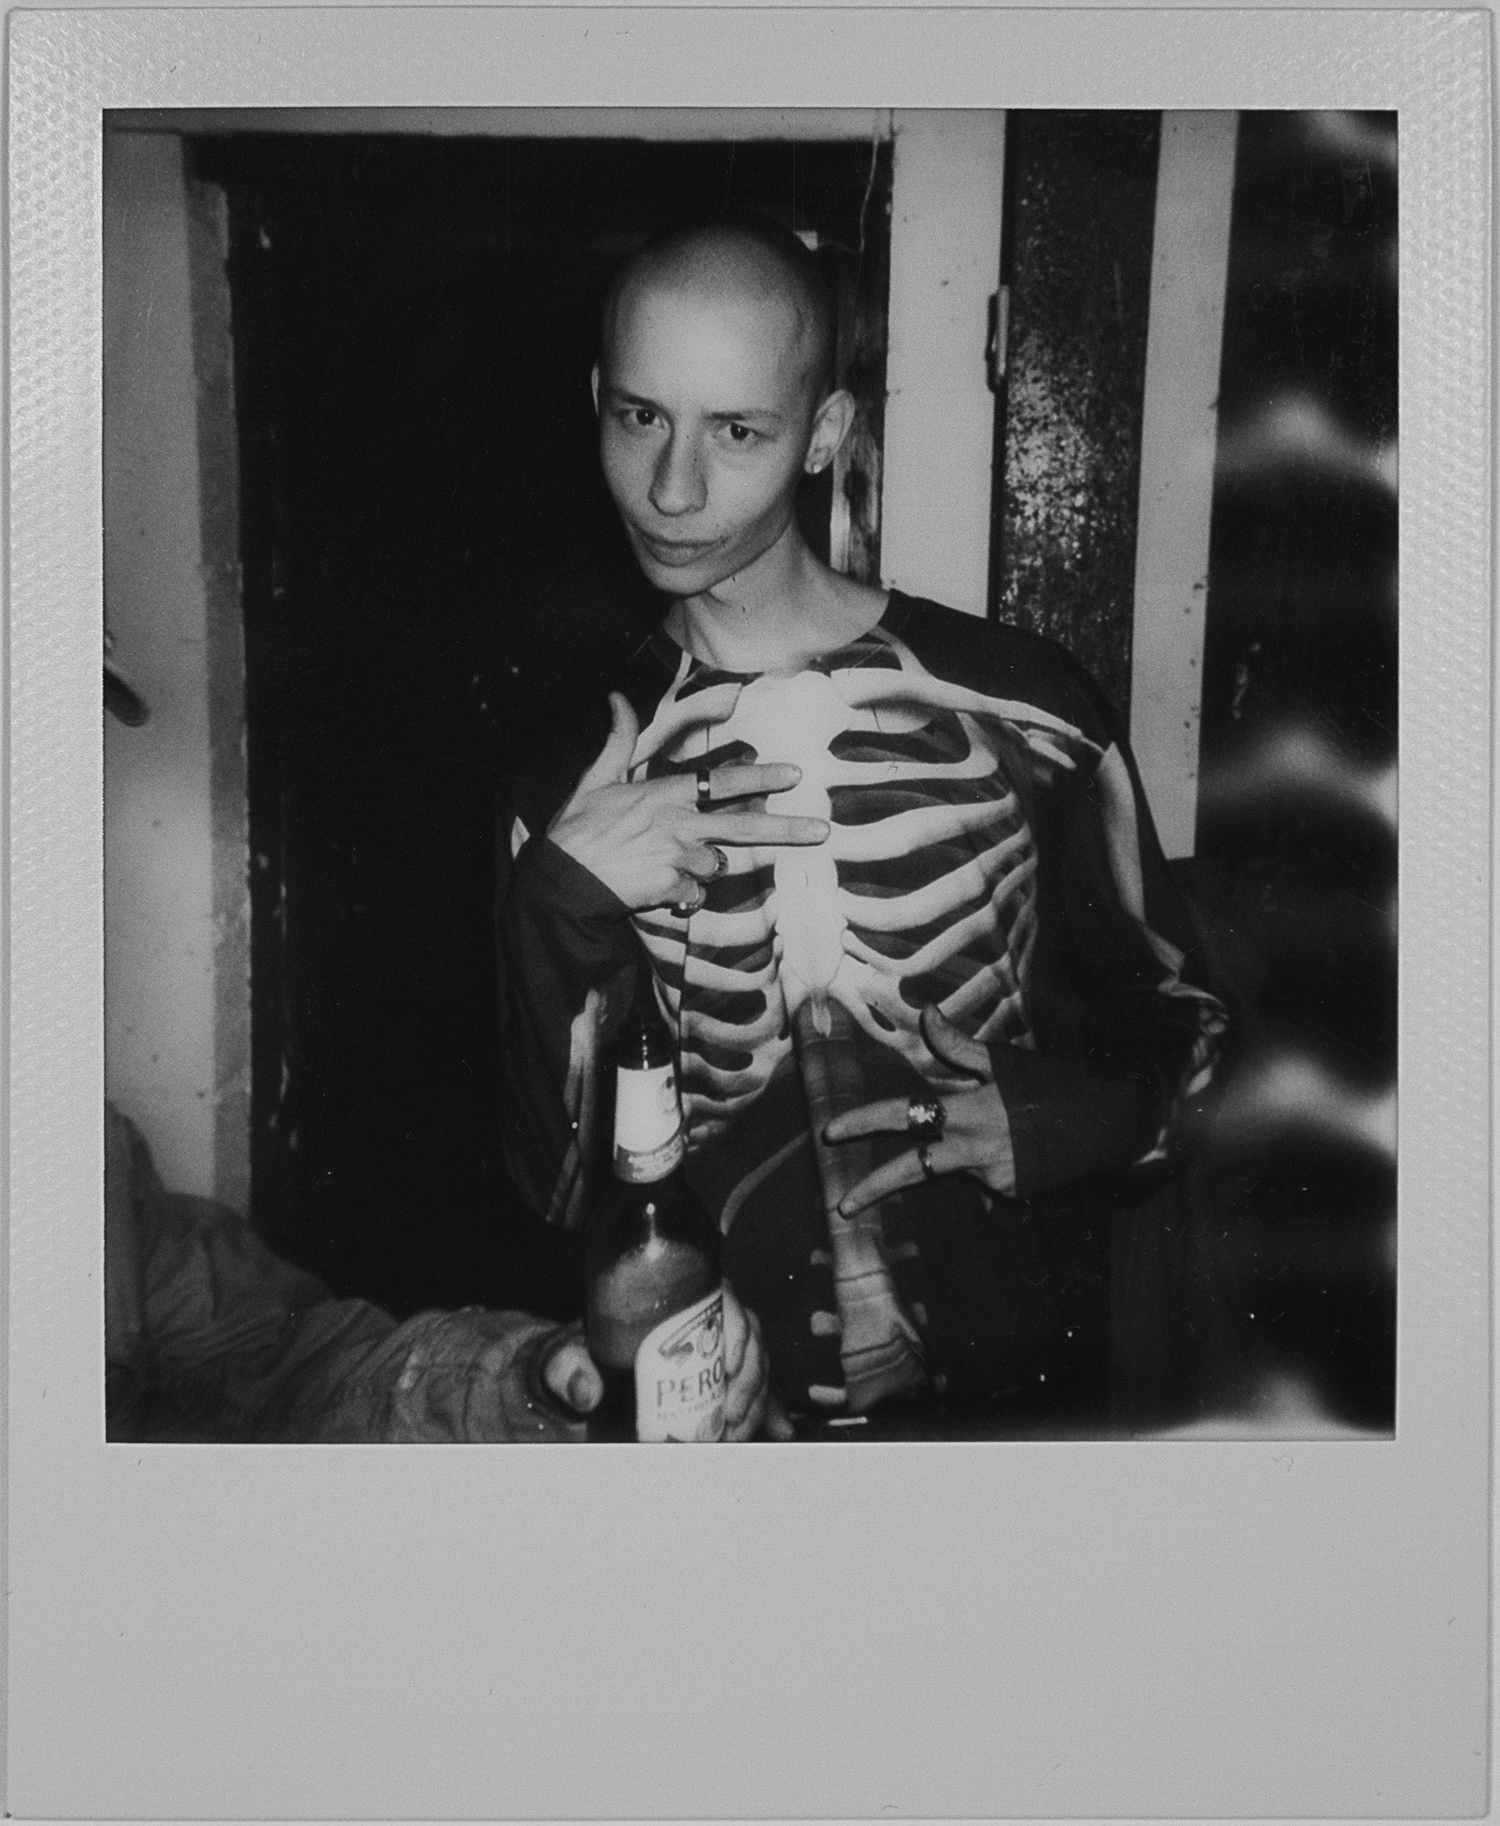 PYLOT ISSUE 04 LAUNCH PARTY IMPOSSIBLE PROJECT 02